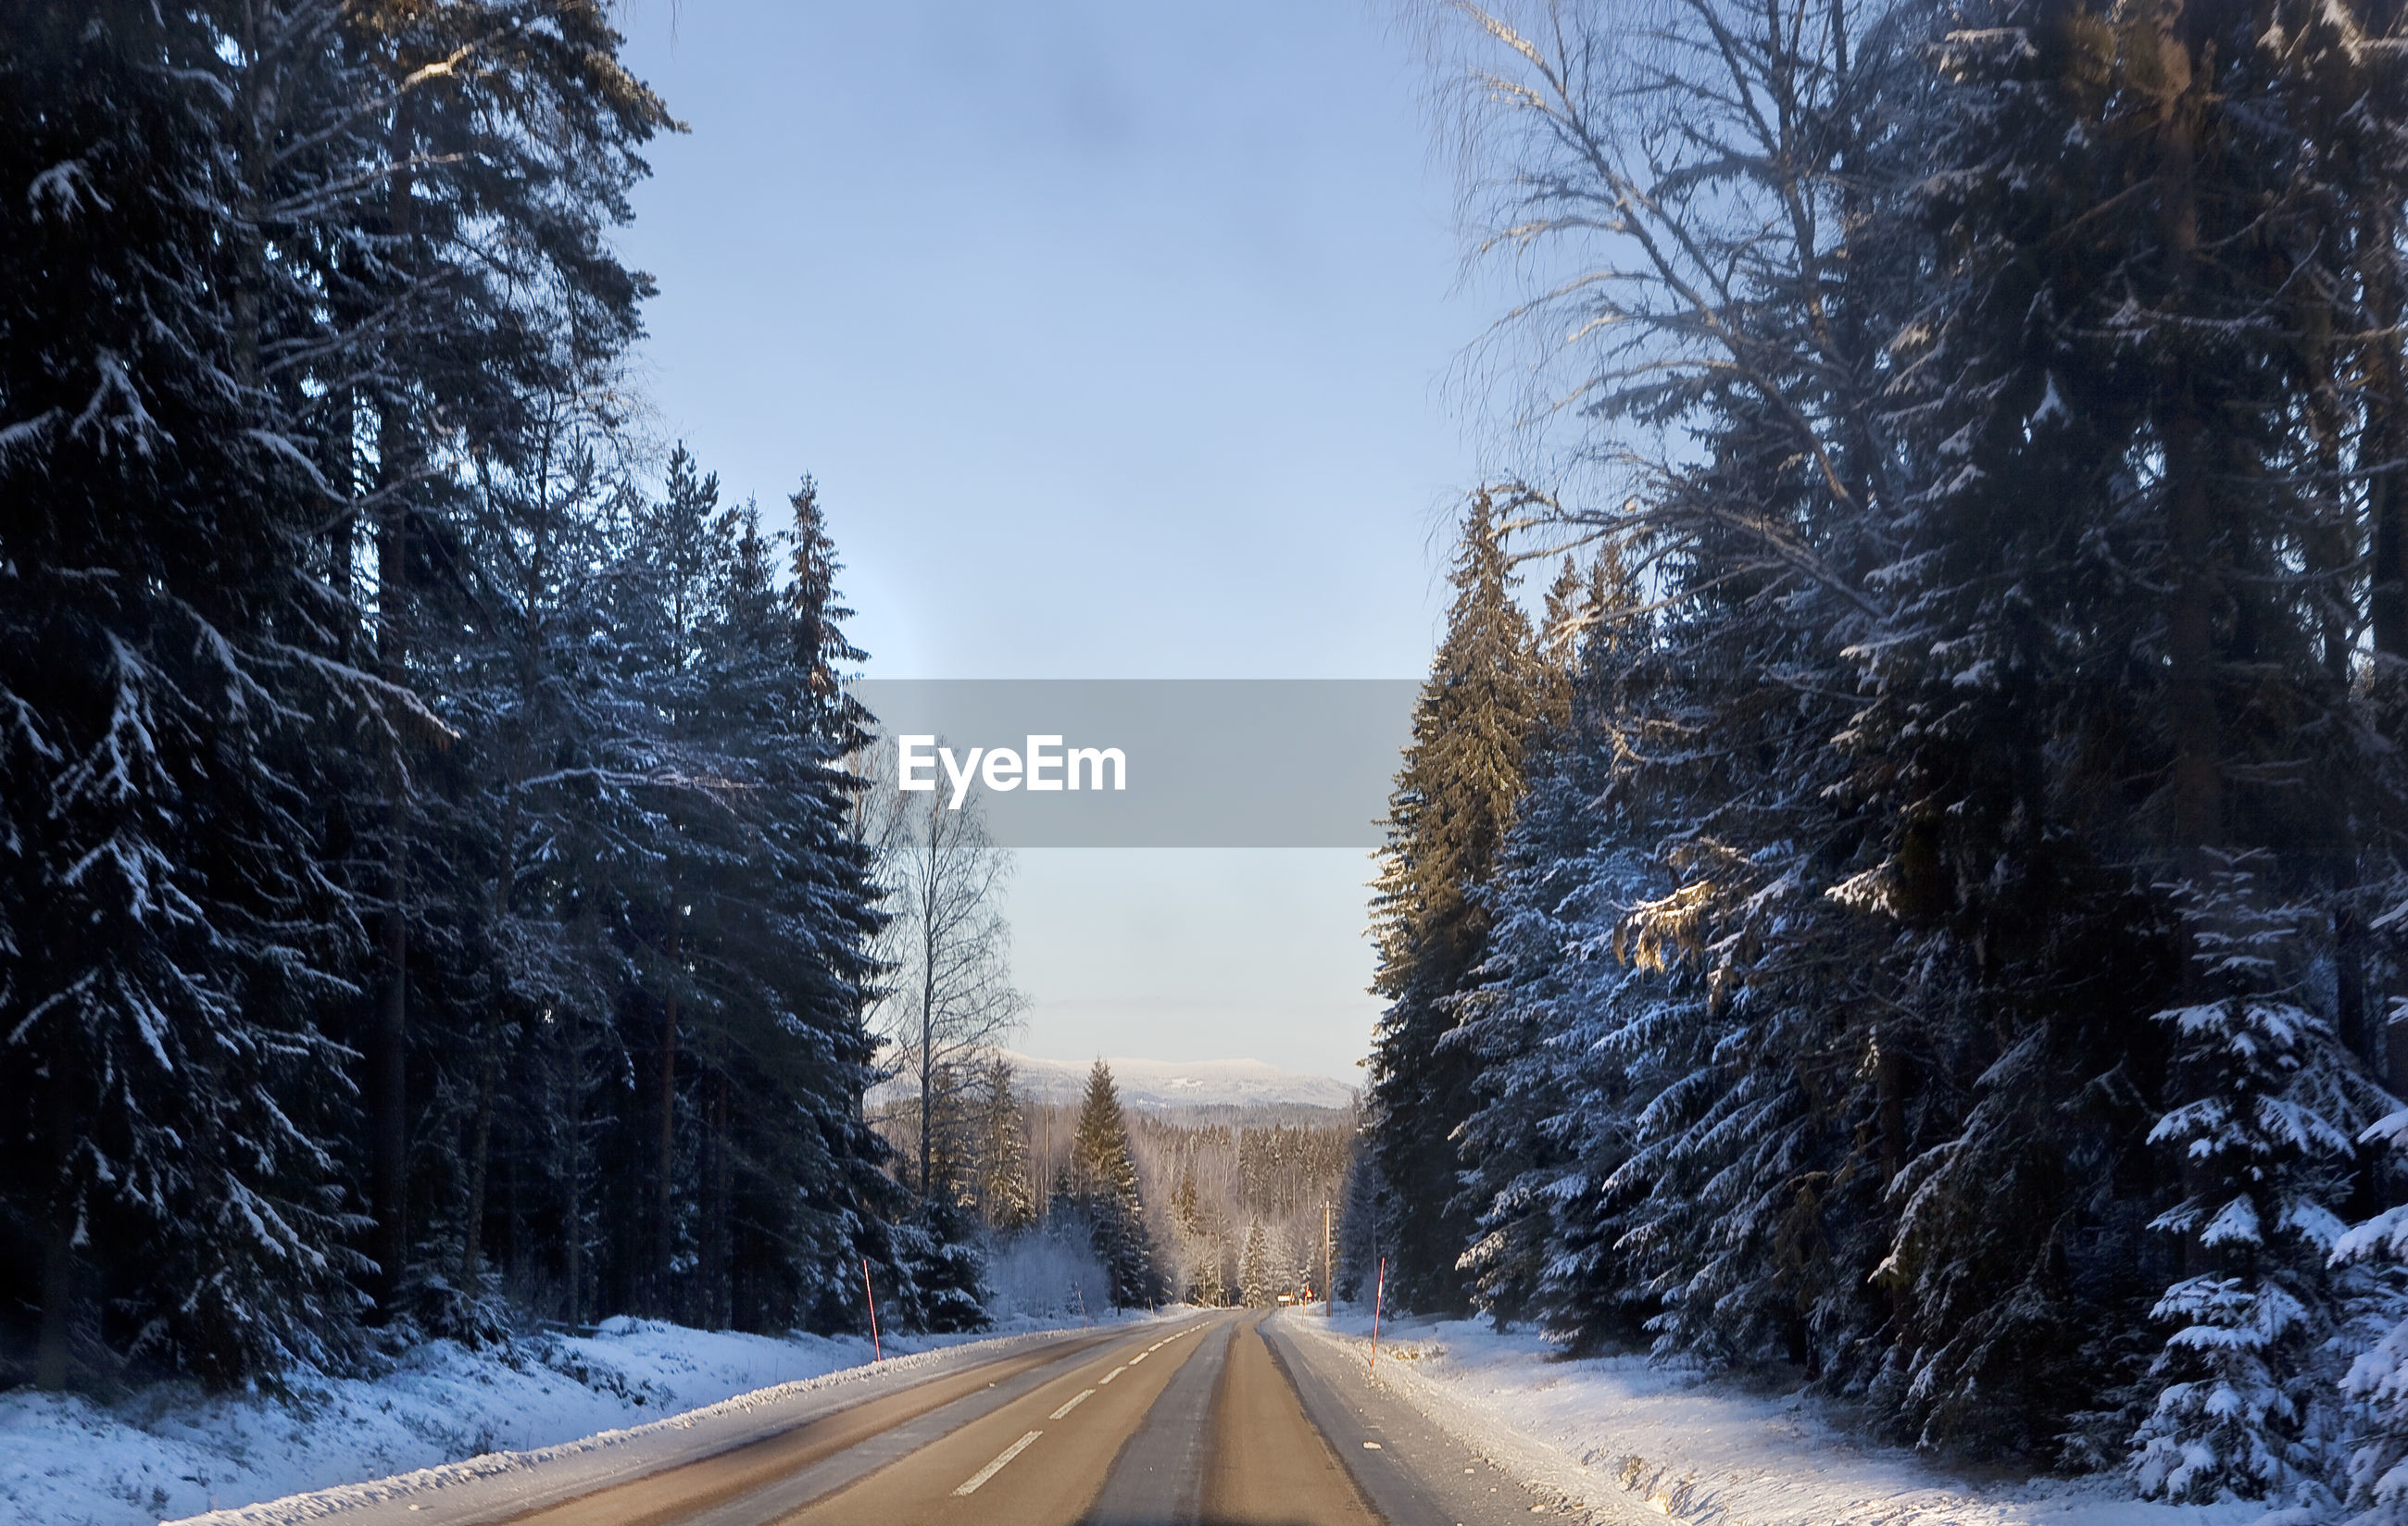 EMPTY ROAD ALONG SNOW COVERED TREES AGAINST SKY